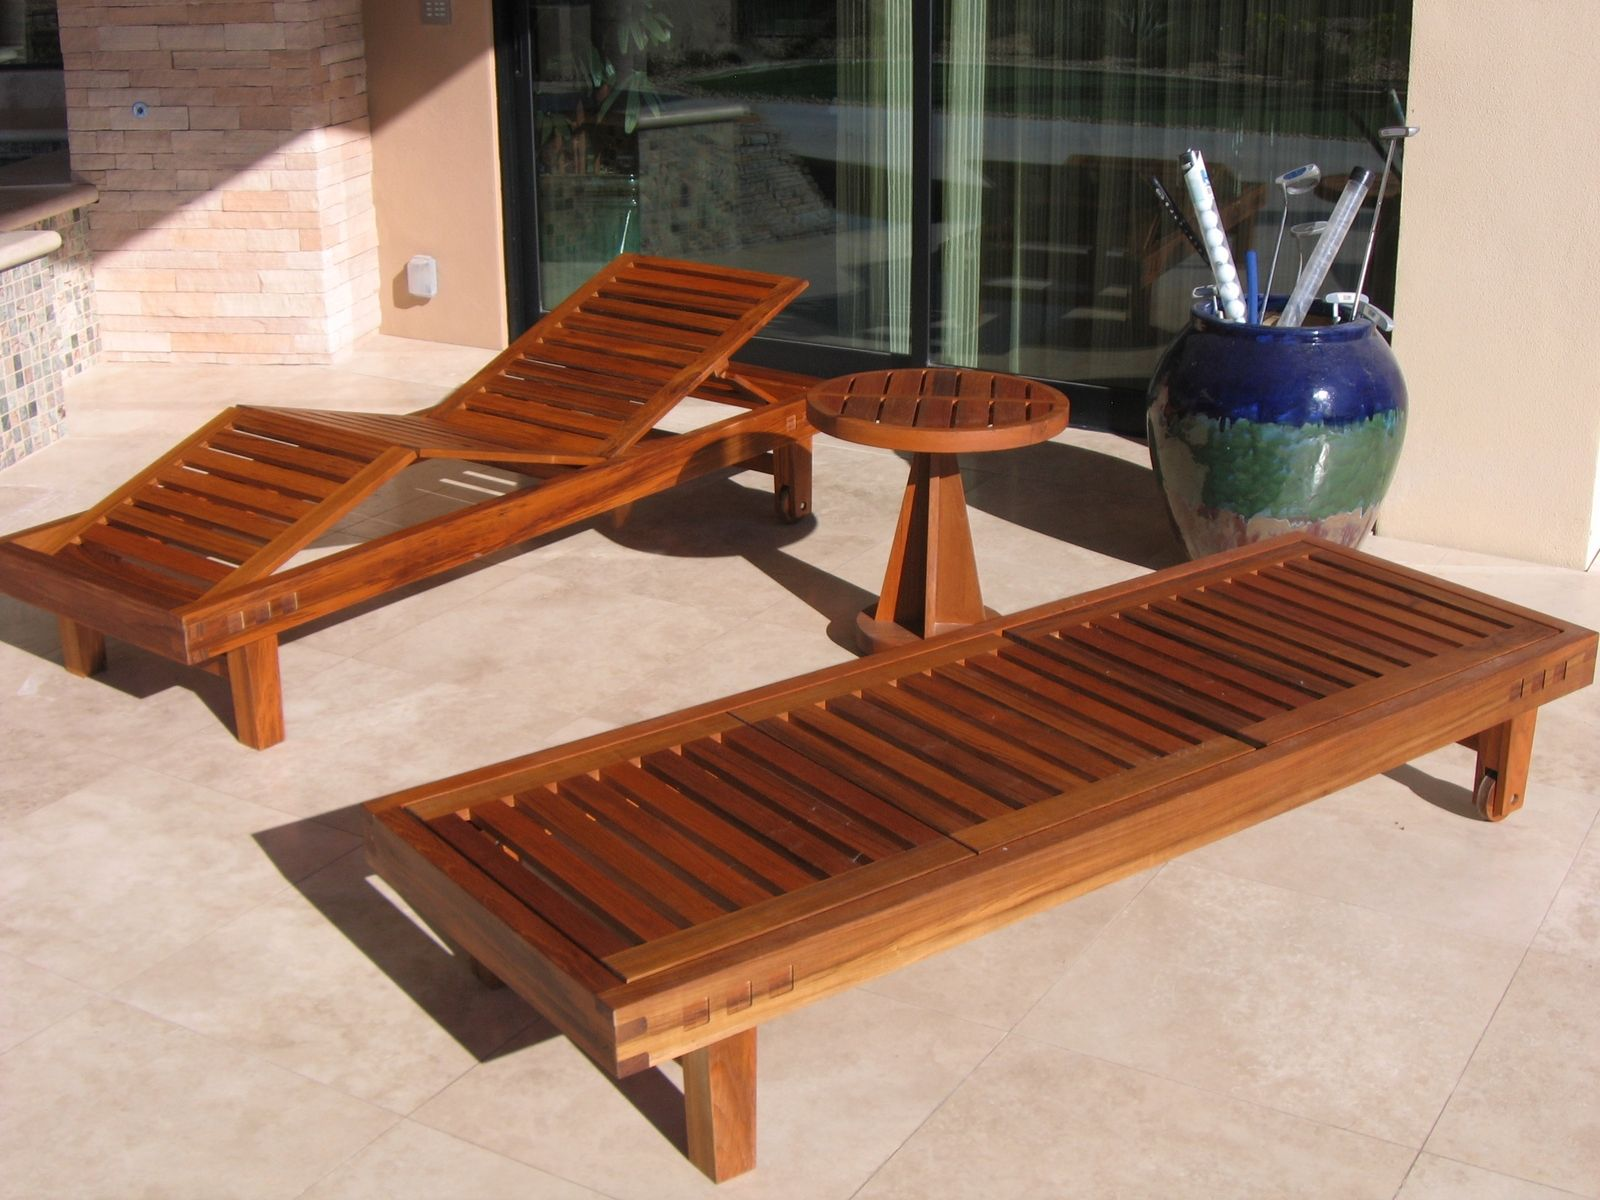 Handmade teak patio furniture by riverwoods mill for Teak outdoor furniture